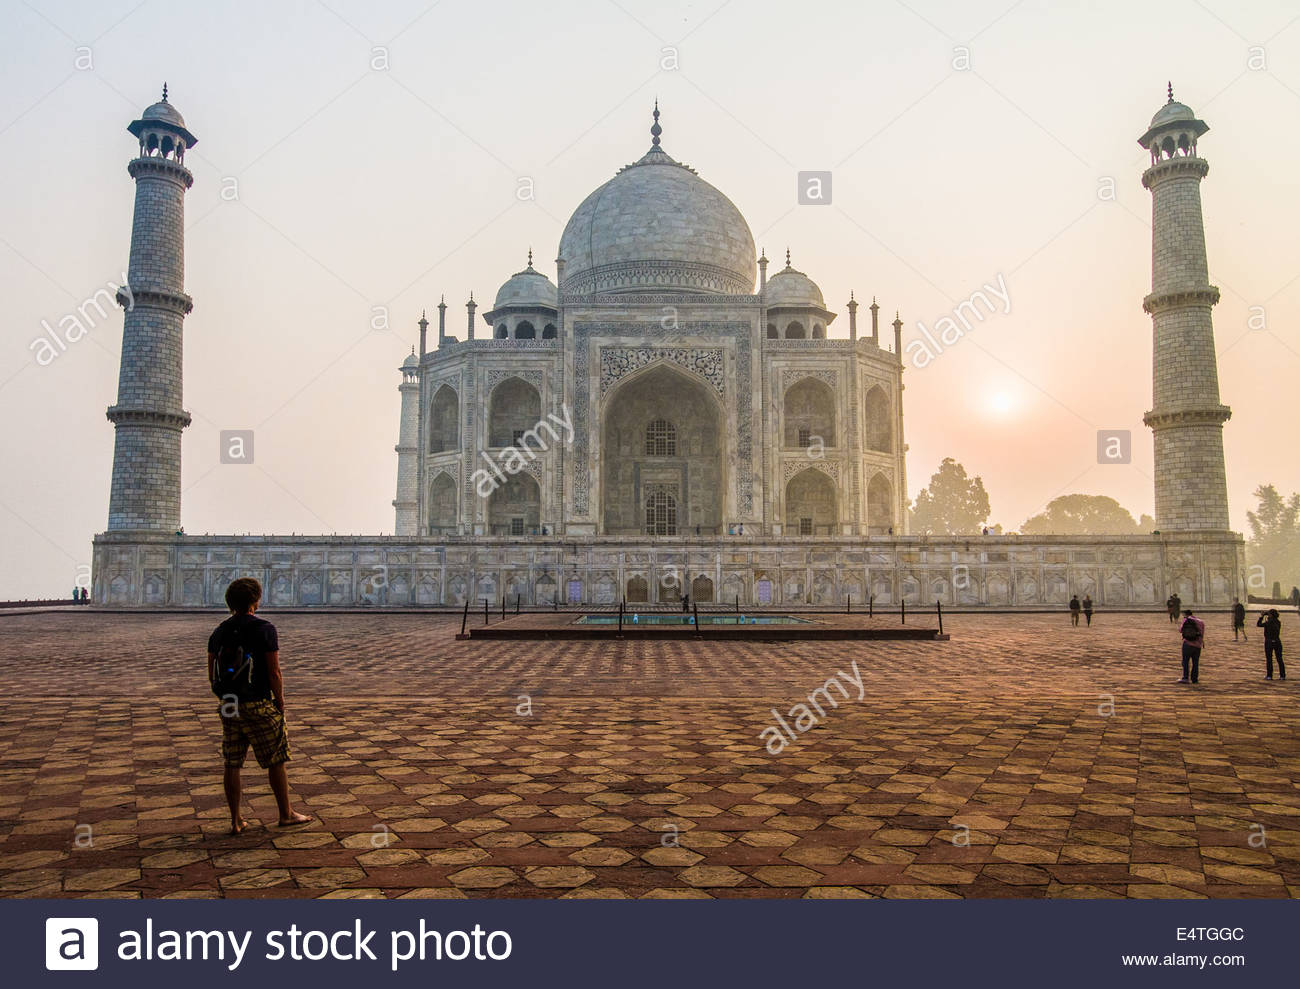 A Man Stands Before The Taj Mahal As The Sun Comes Up Behind It, Agra, India, Asia - Stock Image